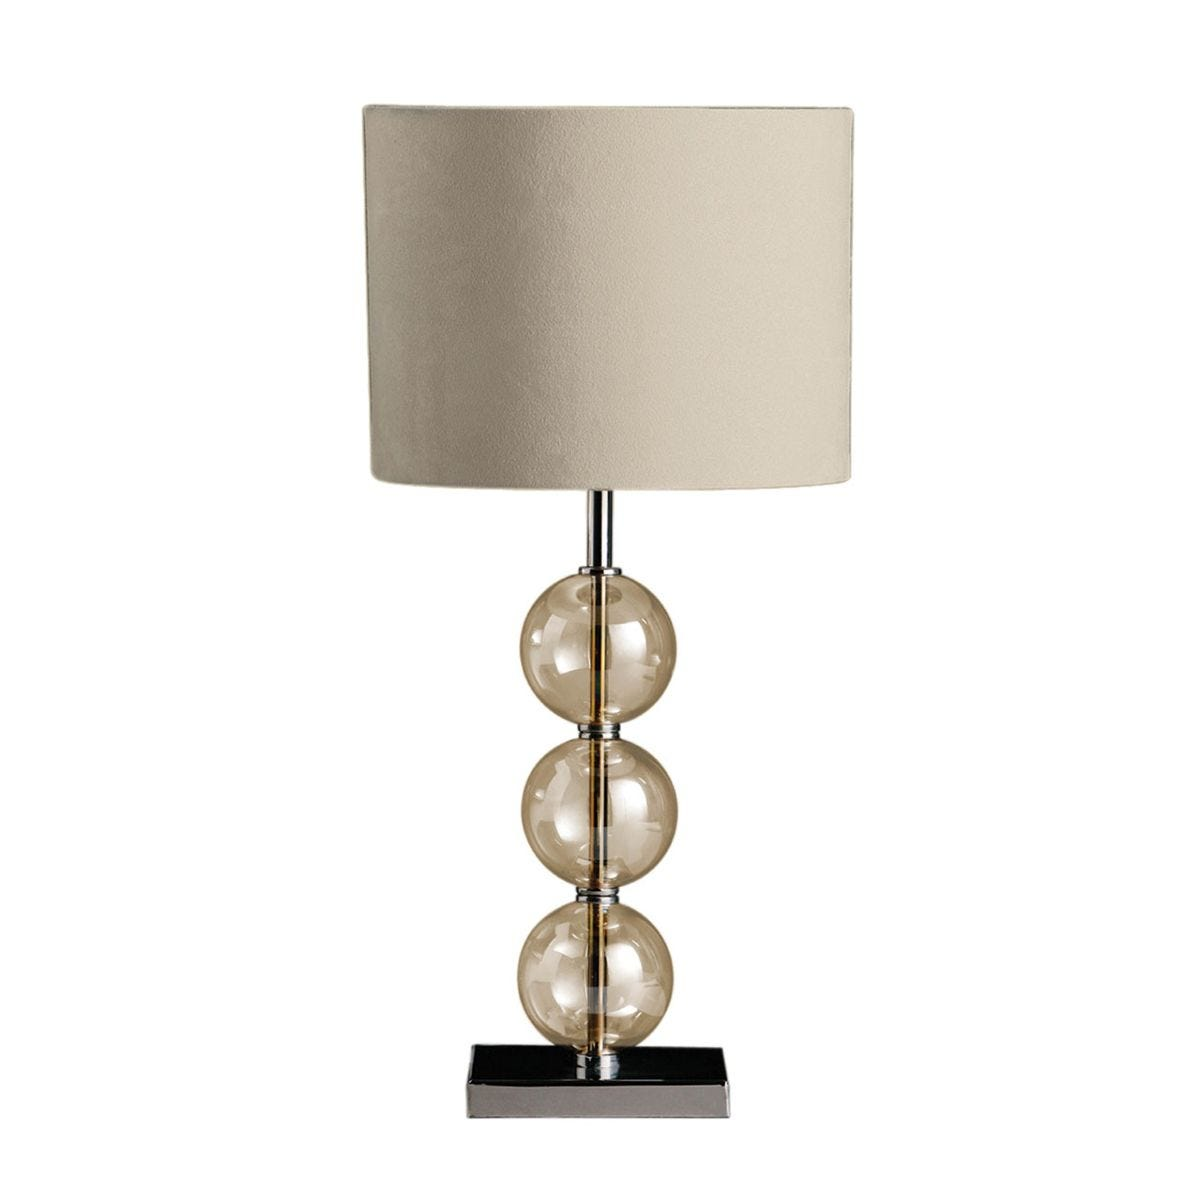 Premier Housewares Mistro Table Lamp with Amber Orb/Chrome Base & Cream Faux Suede Shade